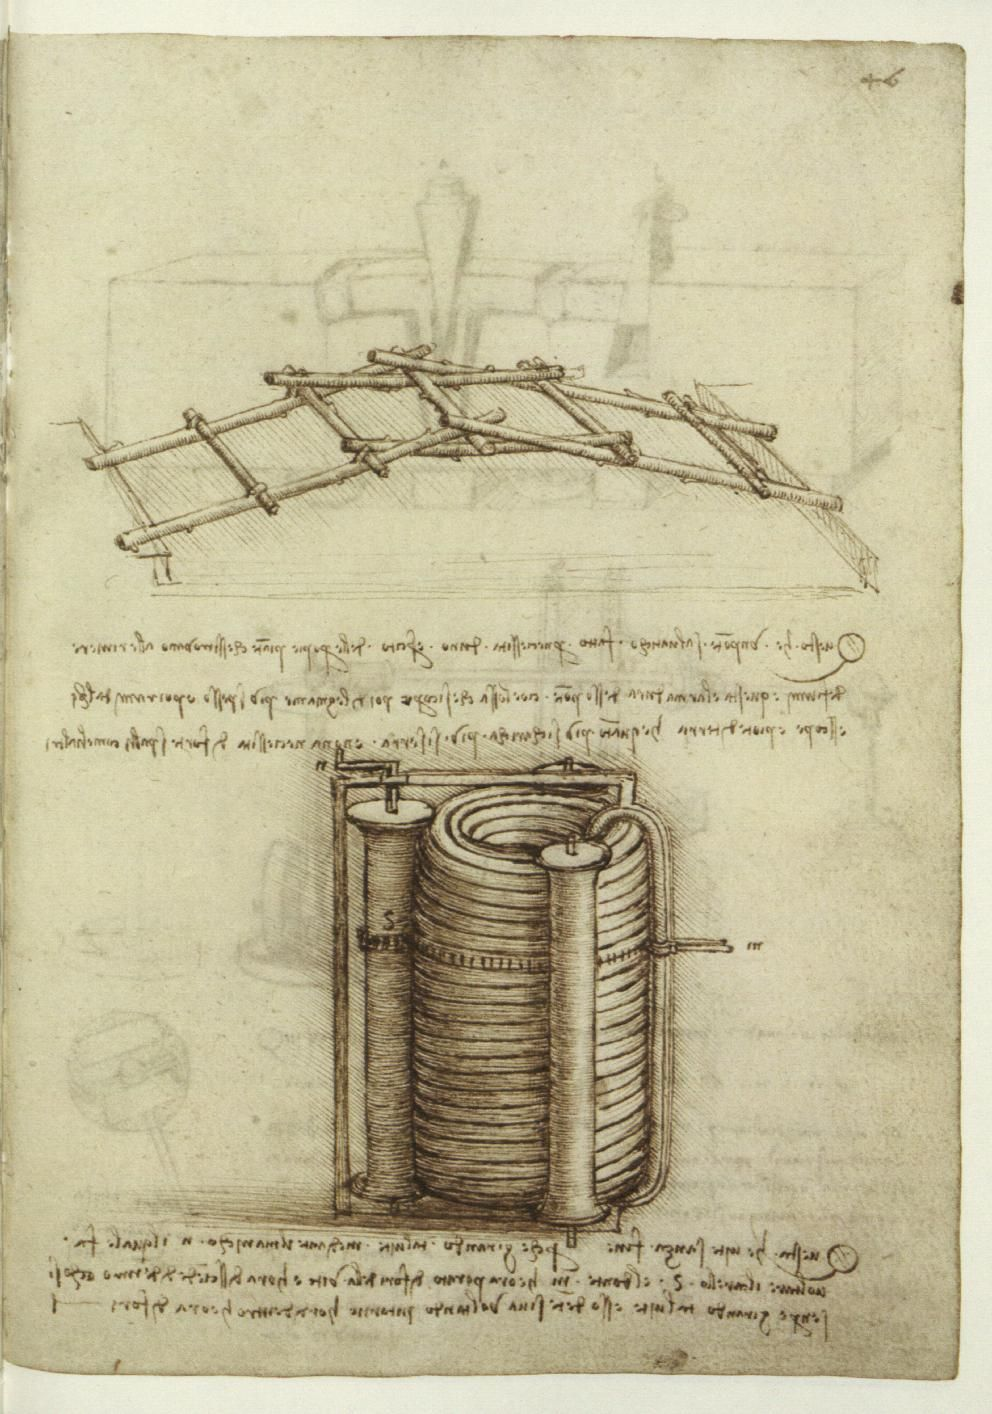 Leonardo da Vinci | Codex Madrid | National Library Madrid | Tratado de Estatica Y Mechanica| Library Number 8937